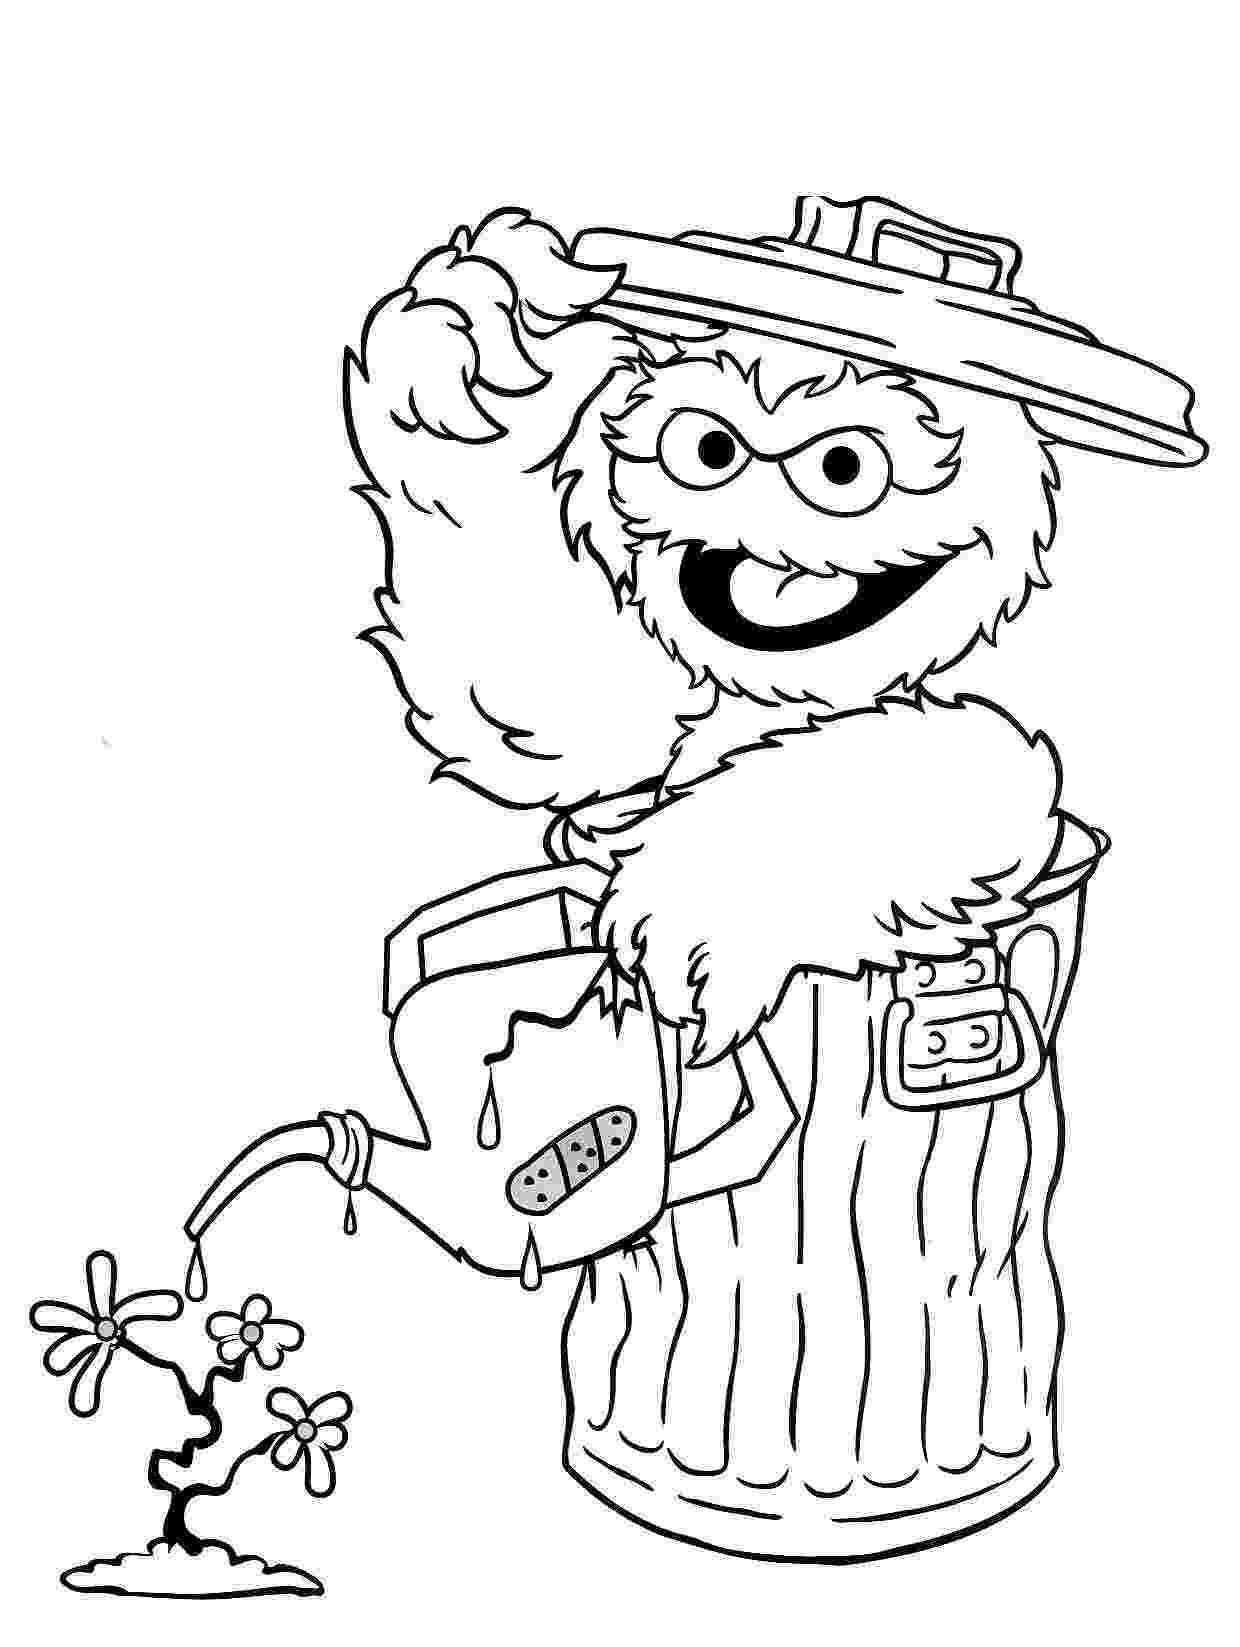 sesame street characters pictures to print coloring sheet with sesame street characters coloring pictures print to characters sesame street